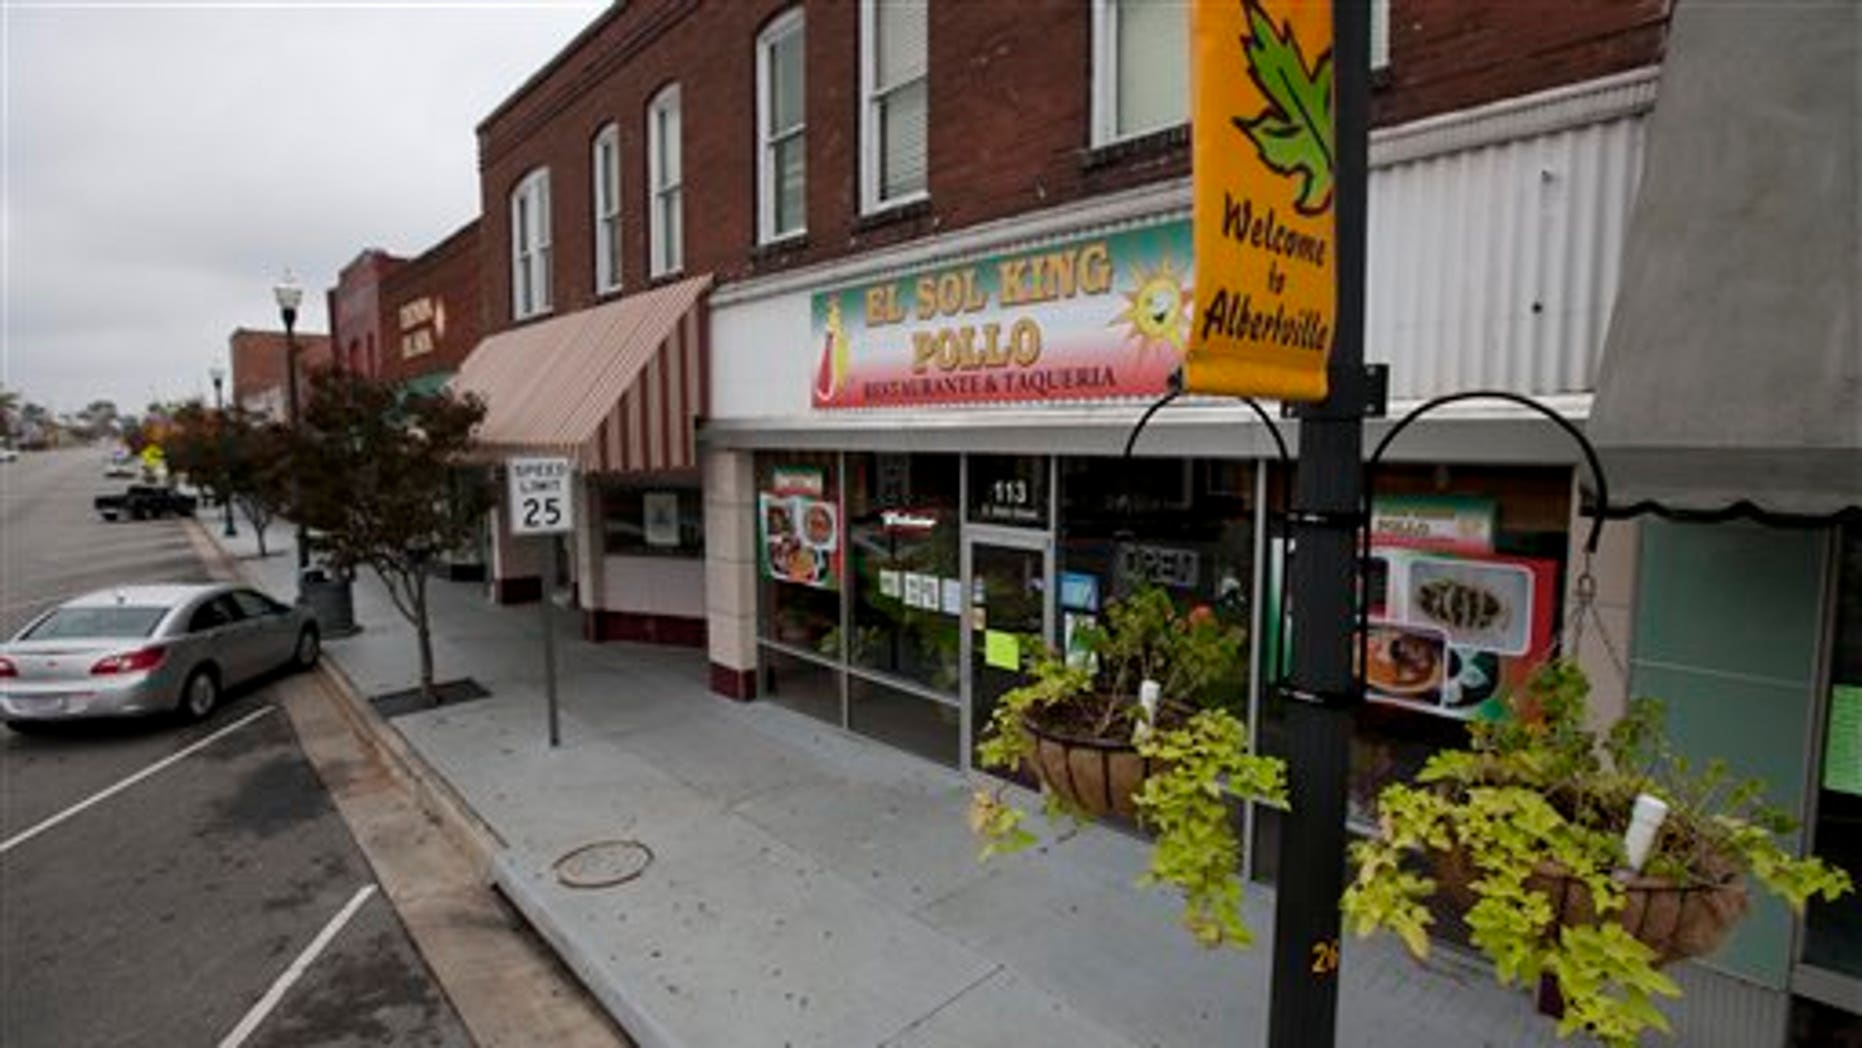 A row of Hispanic owned businesses are closed in Albertville, Ala., Wednesday, Oct. 12, 2011. Dozens of businesses across the state shut down as Hispanics took a day off from work to protest against Alabama's tough new immigration law. (AP Photo/Dave Martin)